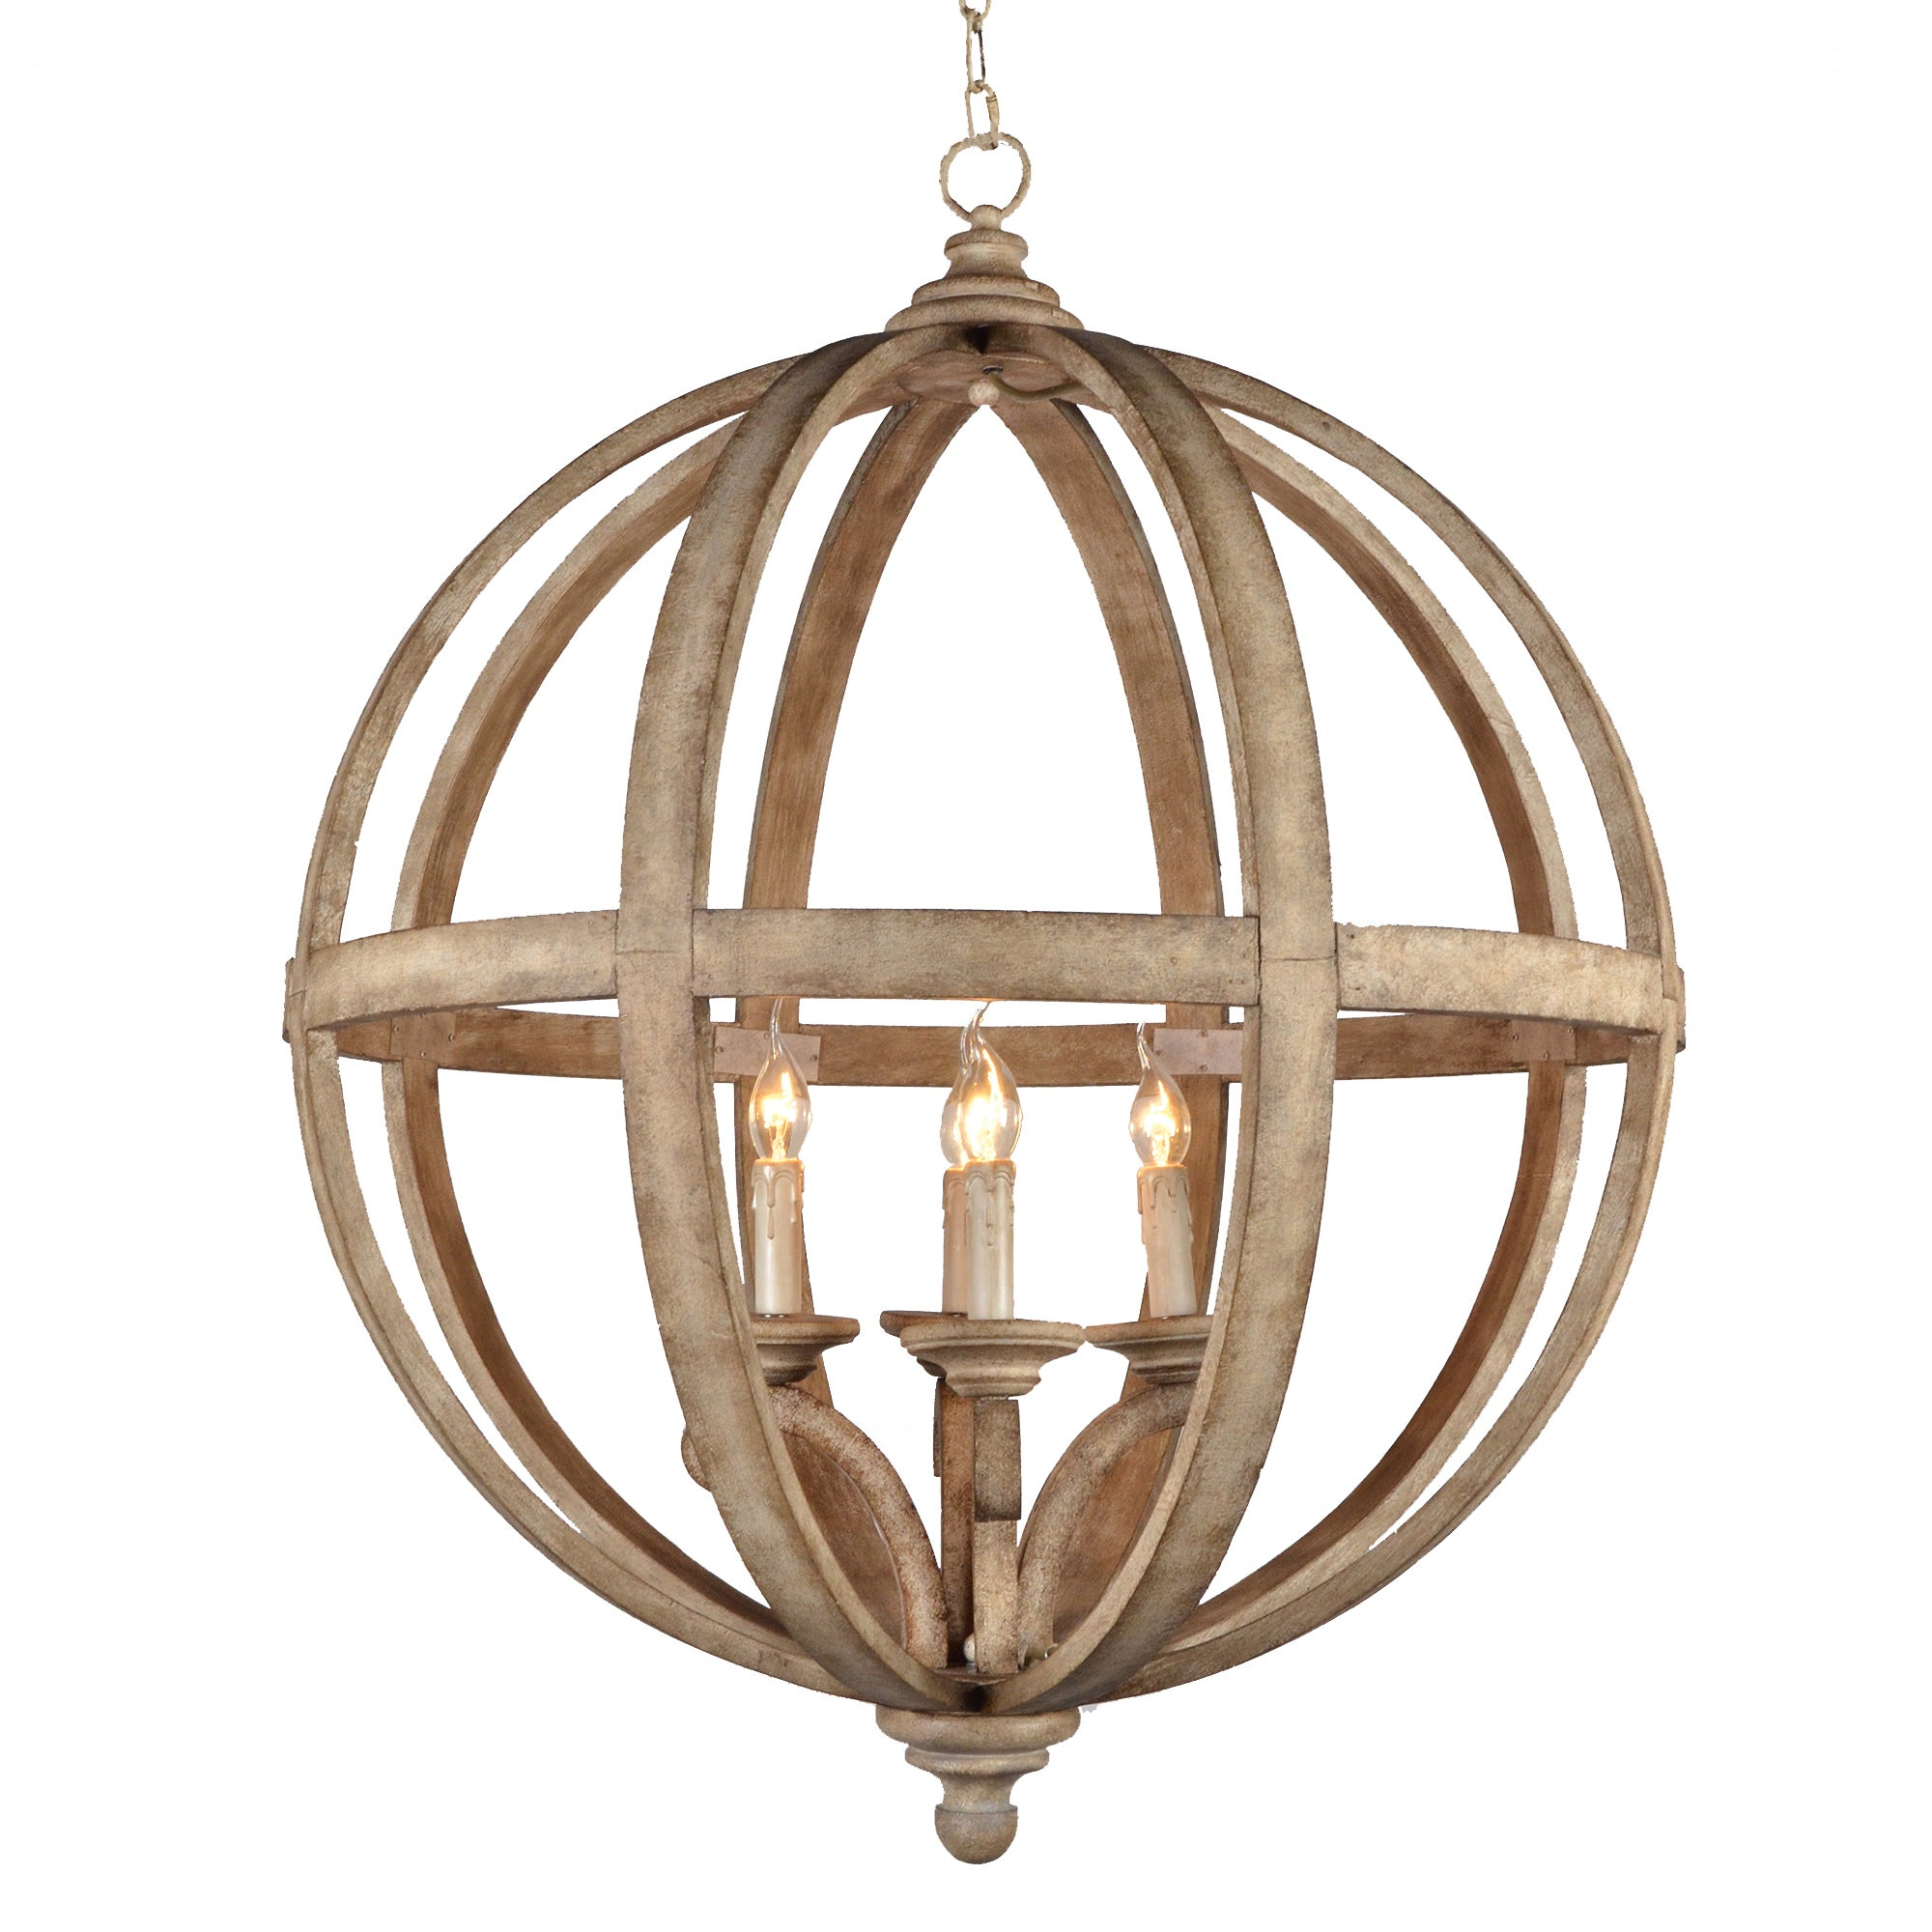 inches free overstock vonn capella chandelier in globe product hanging led today shipping home garden light silver modern lighting adjustable